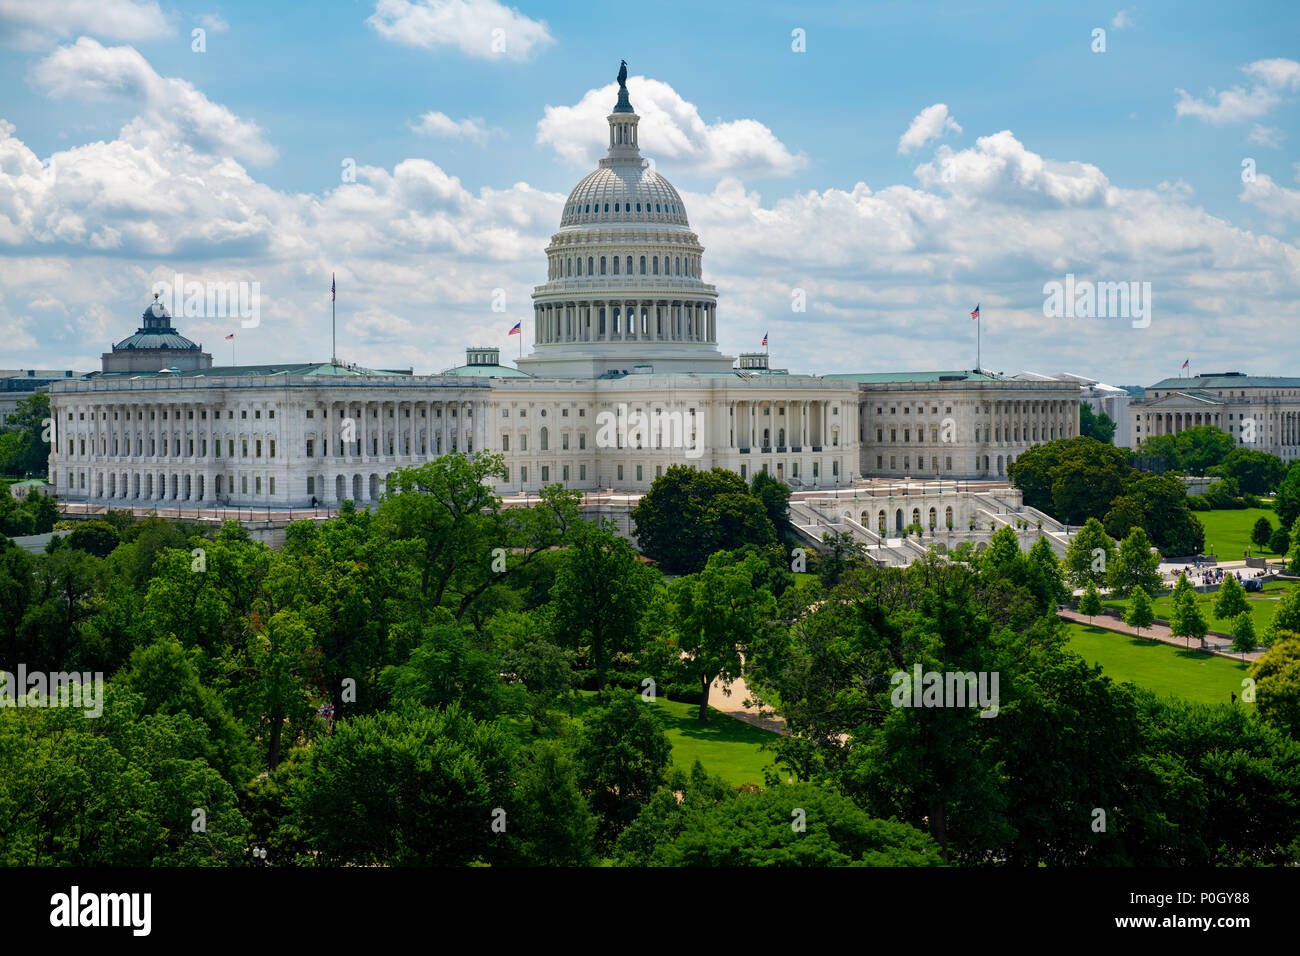 usa-wasington-dc-dc-the-u-s-capitol-building-on-the-hill-on-a-sunny-summer-day-P0GY88.jpg